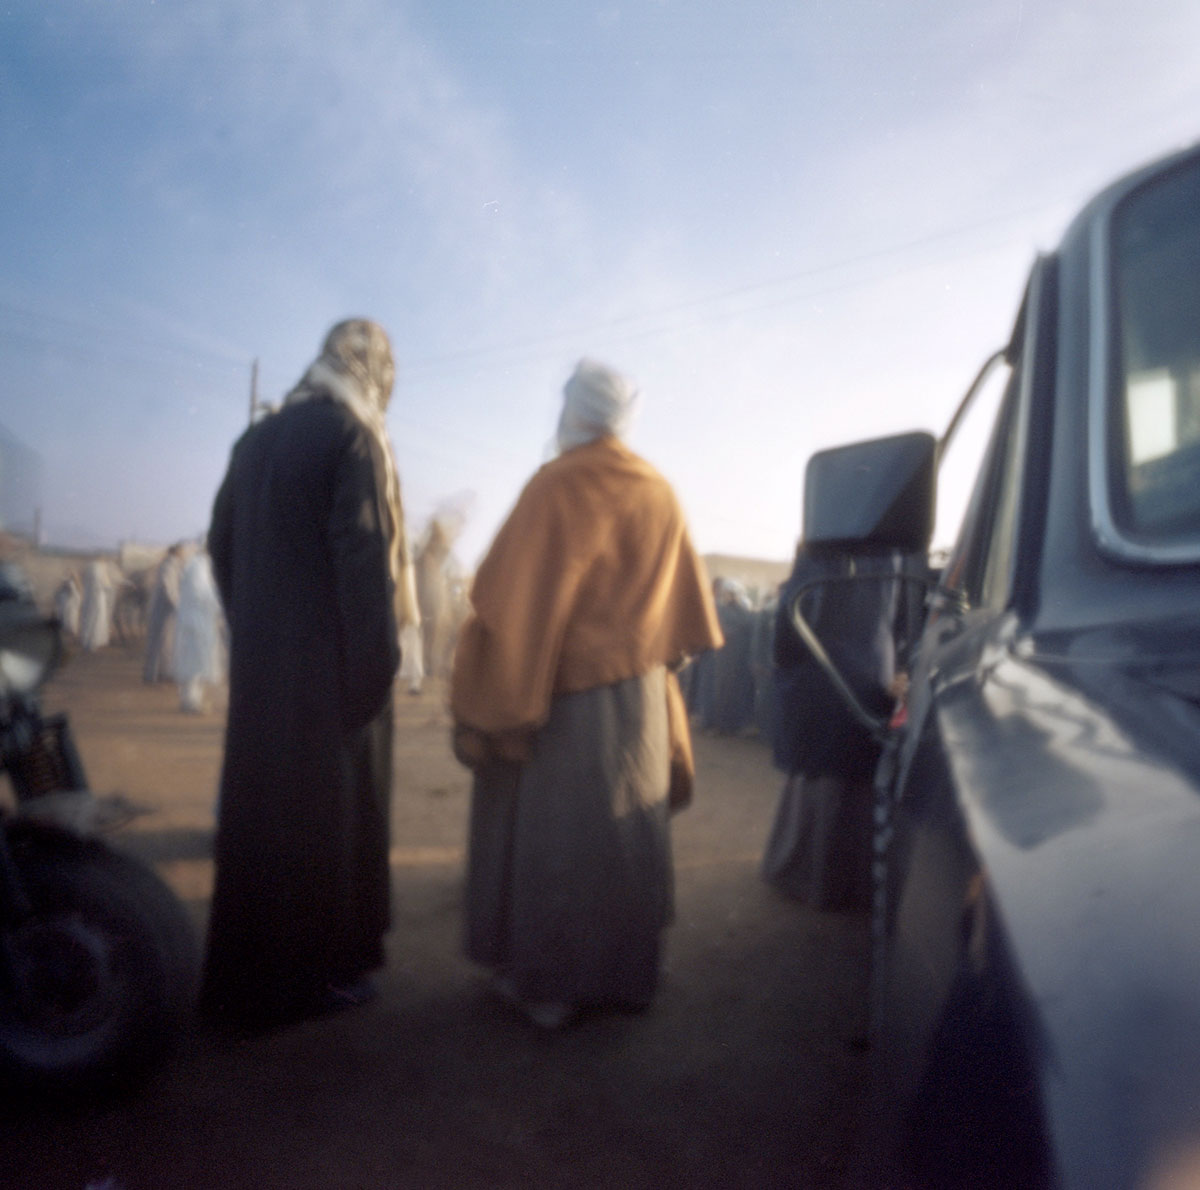 Buyers and Sellers at the Camel Market near Cairo, pinhole photograph, Ektar 100 color film Photo: Liz Doles